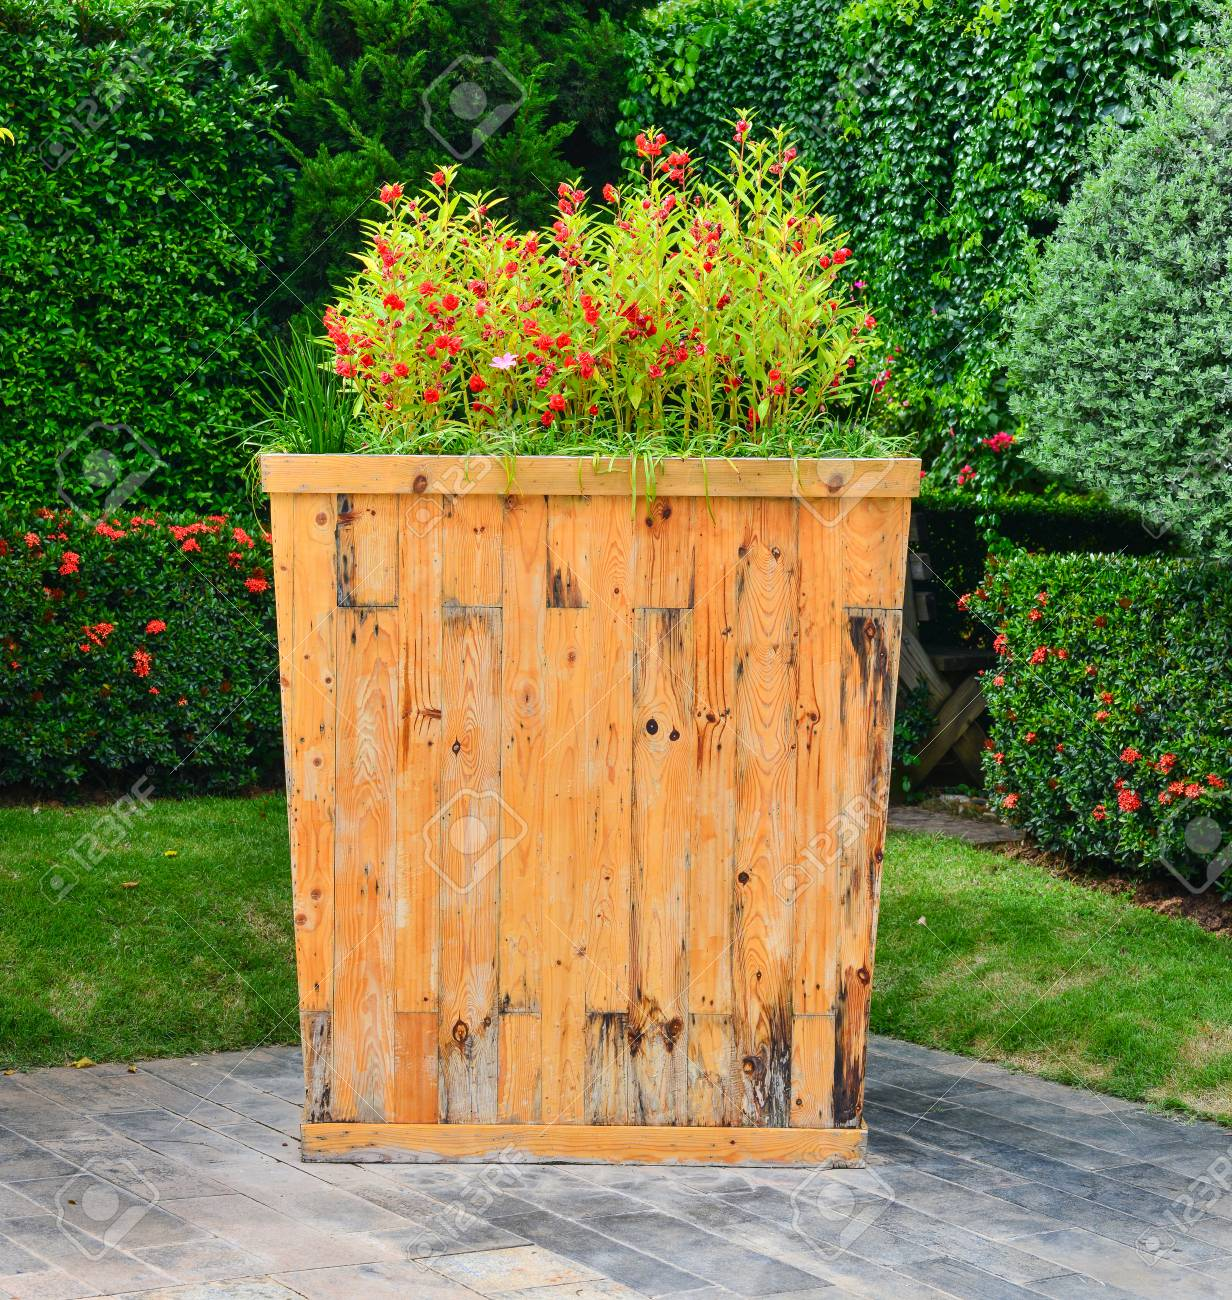 Big Wood Fllowerpot In The Garden Stock Photo, Picture And Royalty